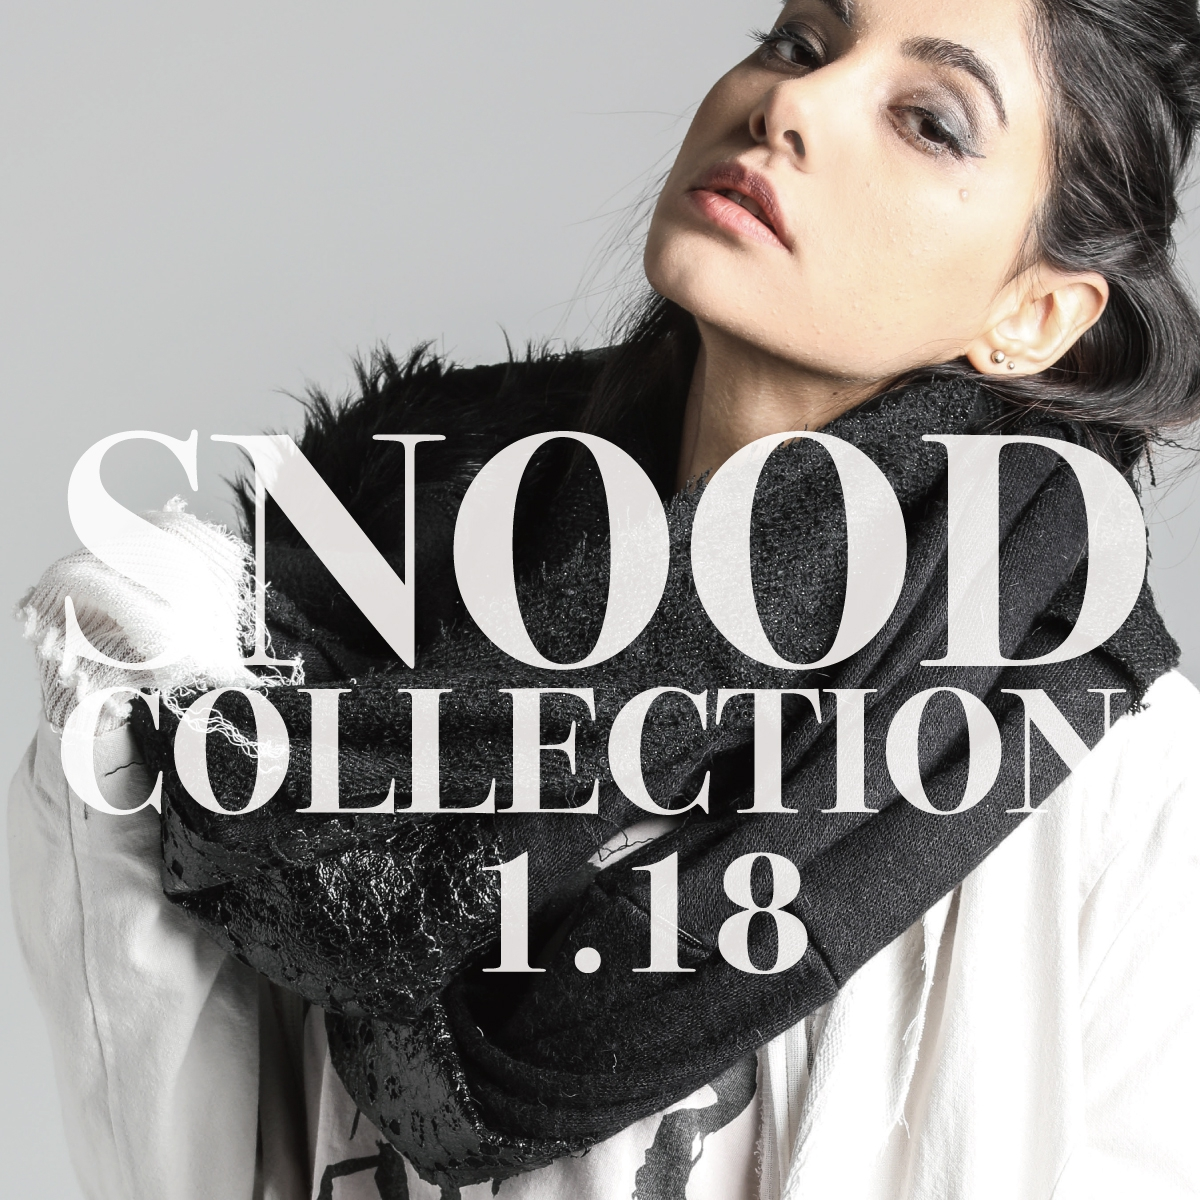 0118【SNOOD Collection】